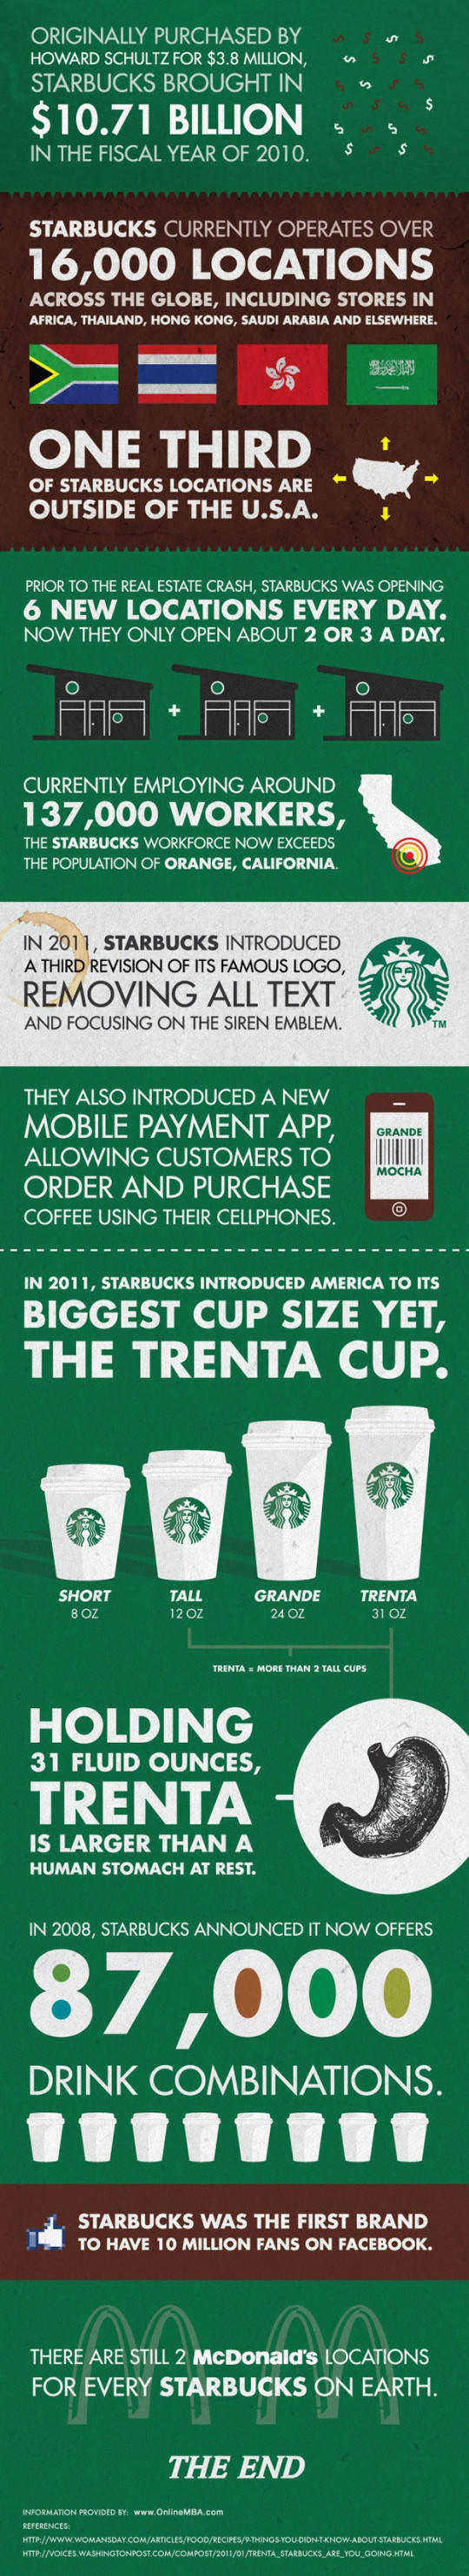 The Size of Starbucks